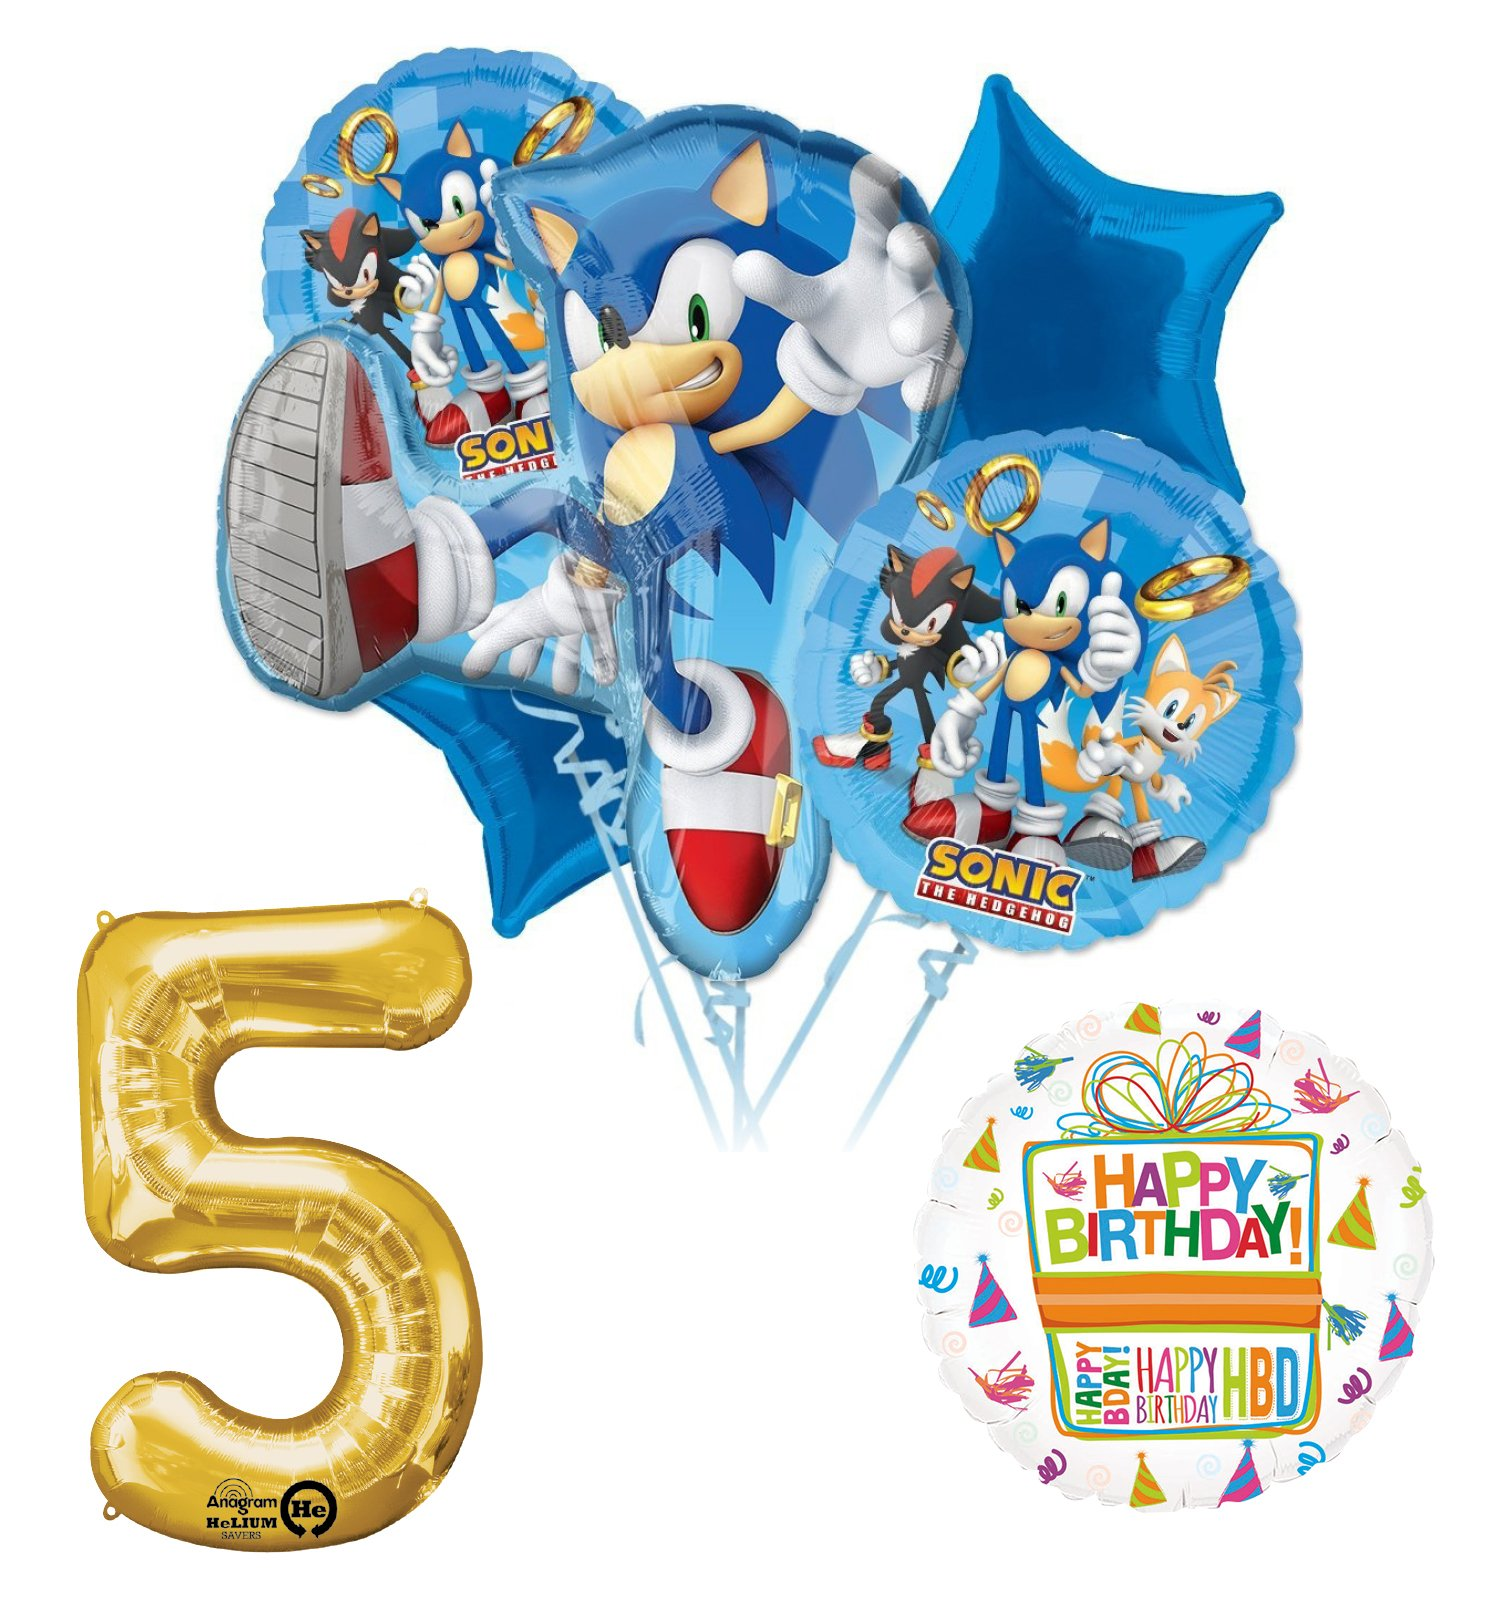 Mayflower Products Sonic The Hedgehog 5th Birthday Party Supplies and Balloon Decorations